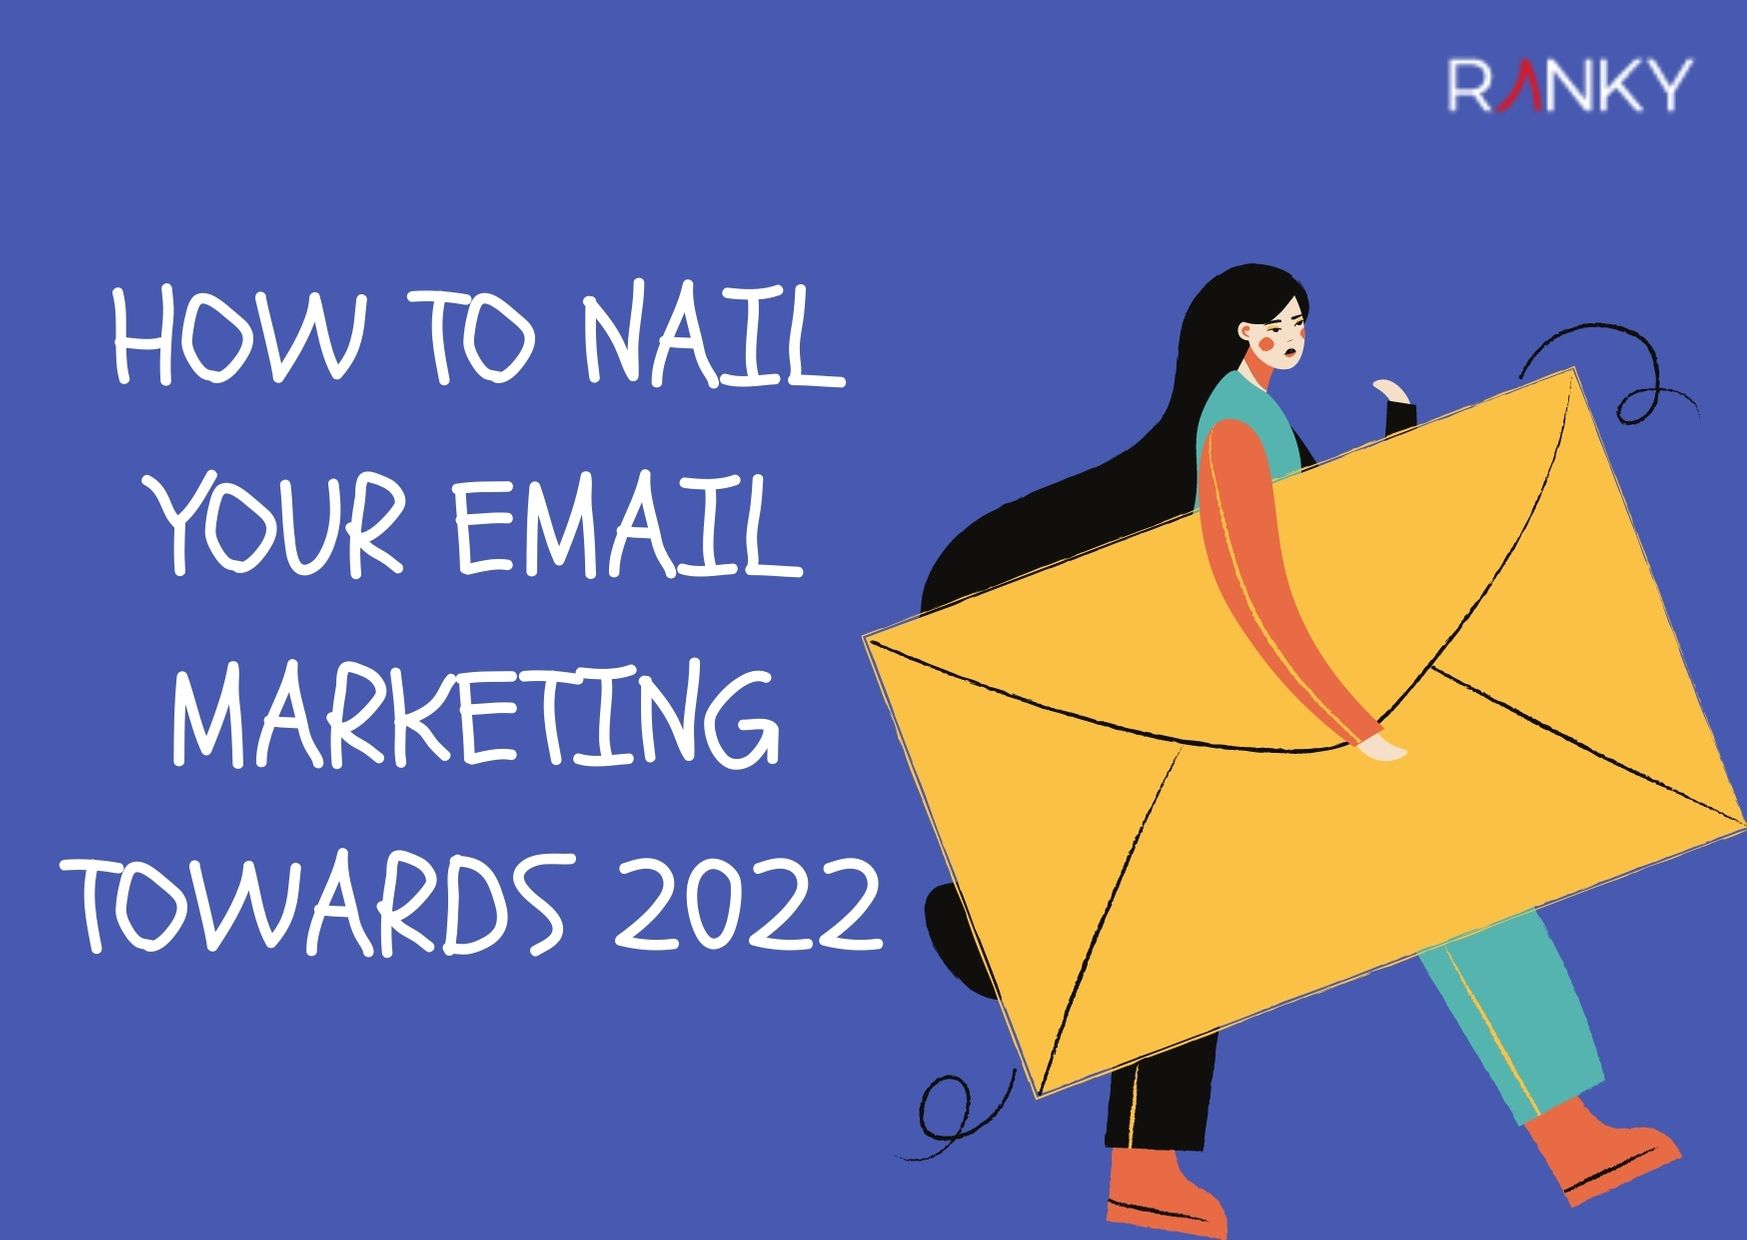 How to Nail Your Email Marketing Towards 2022